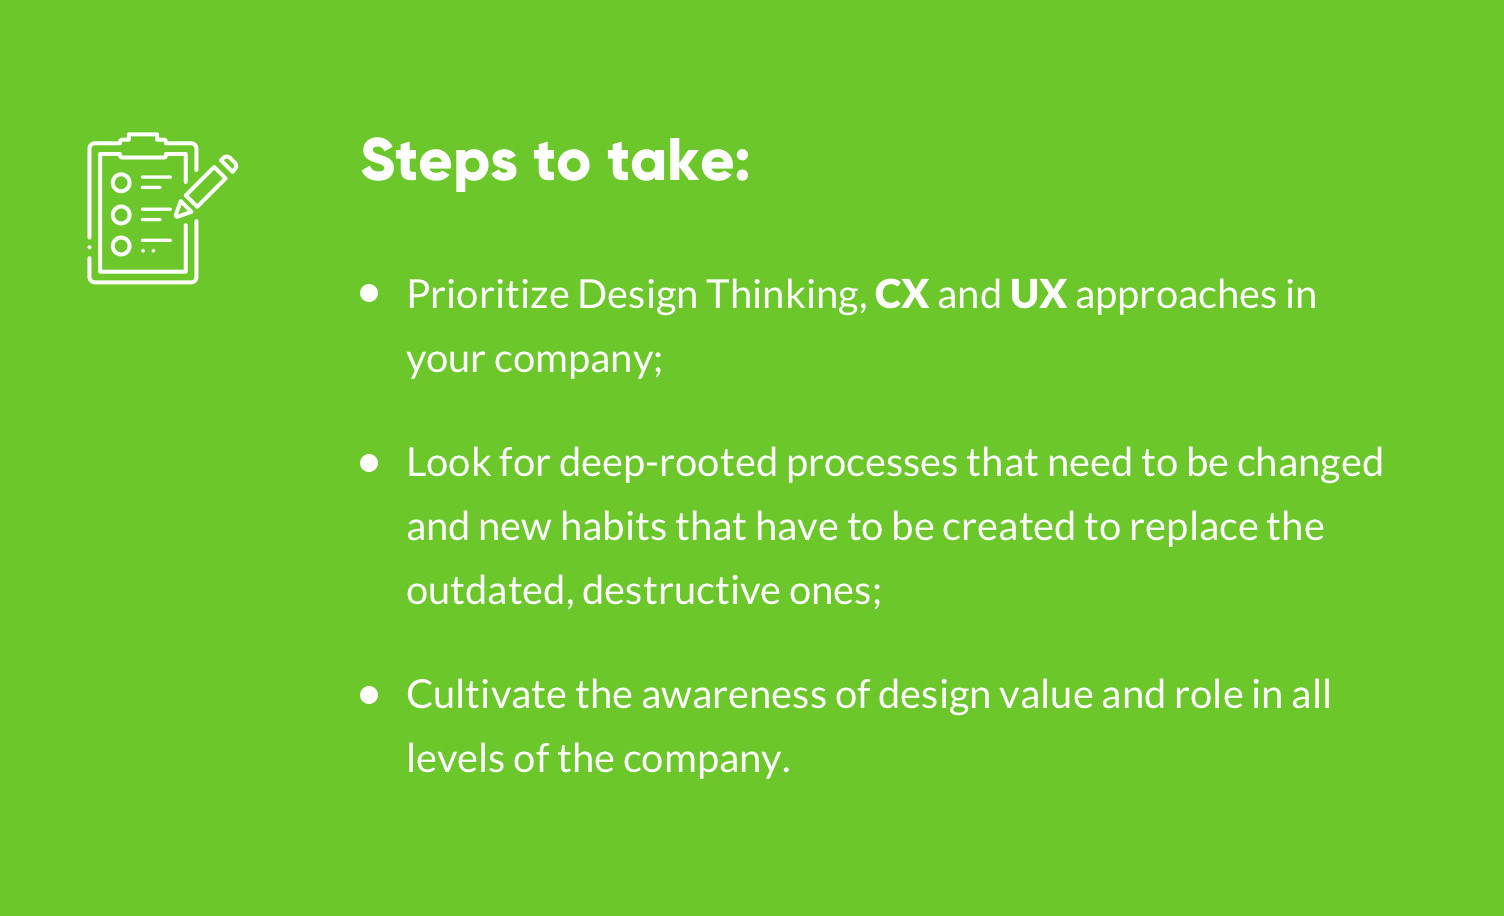 ux-design-for-banking-uxda-methodology-1-S.jpg